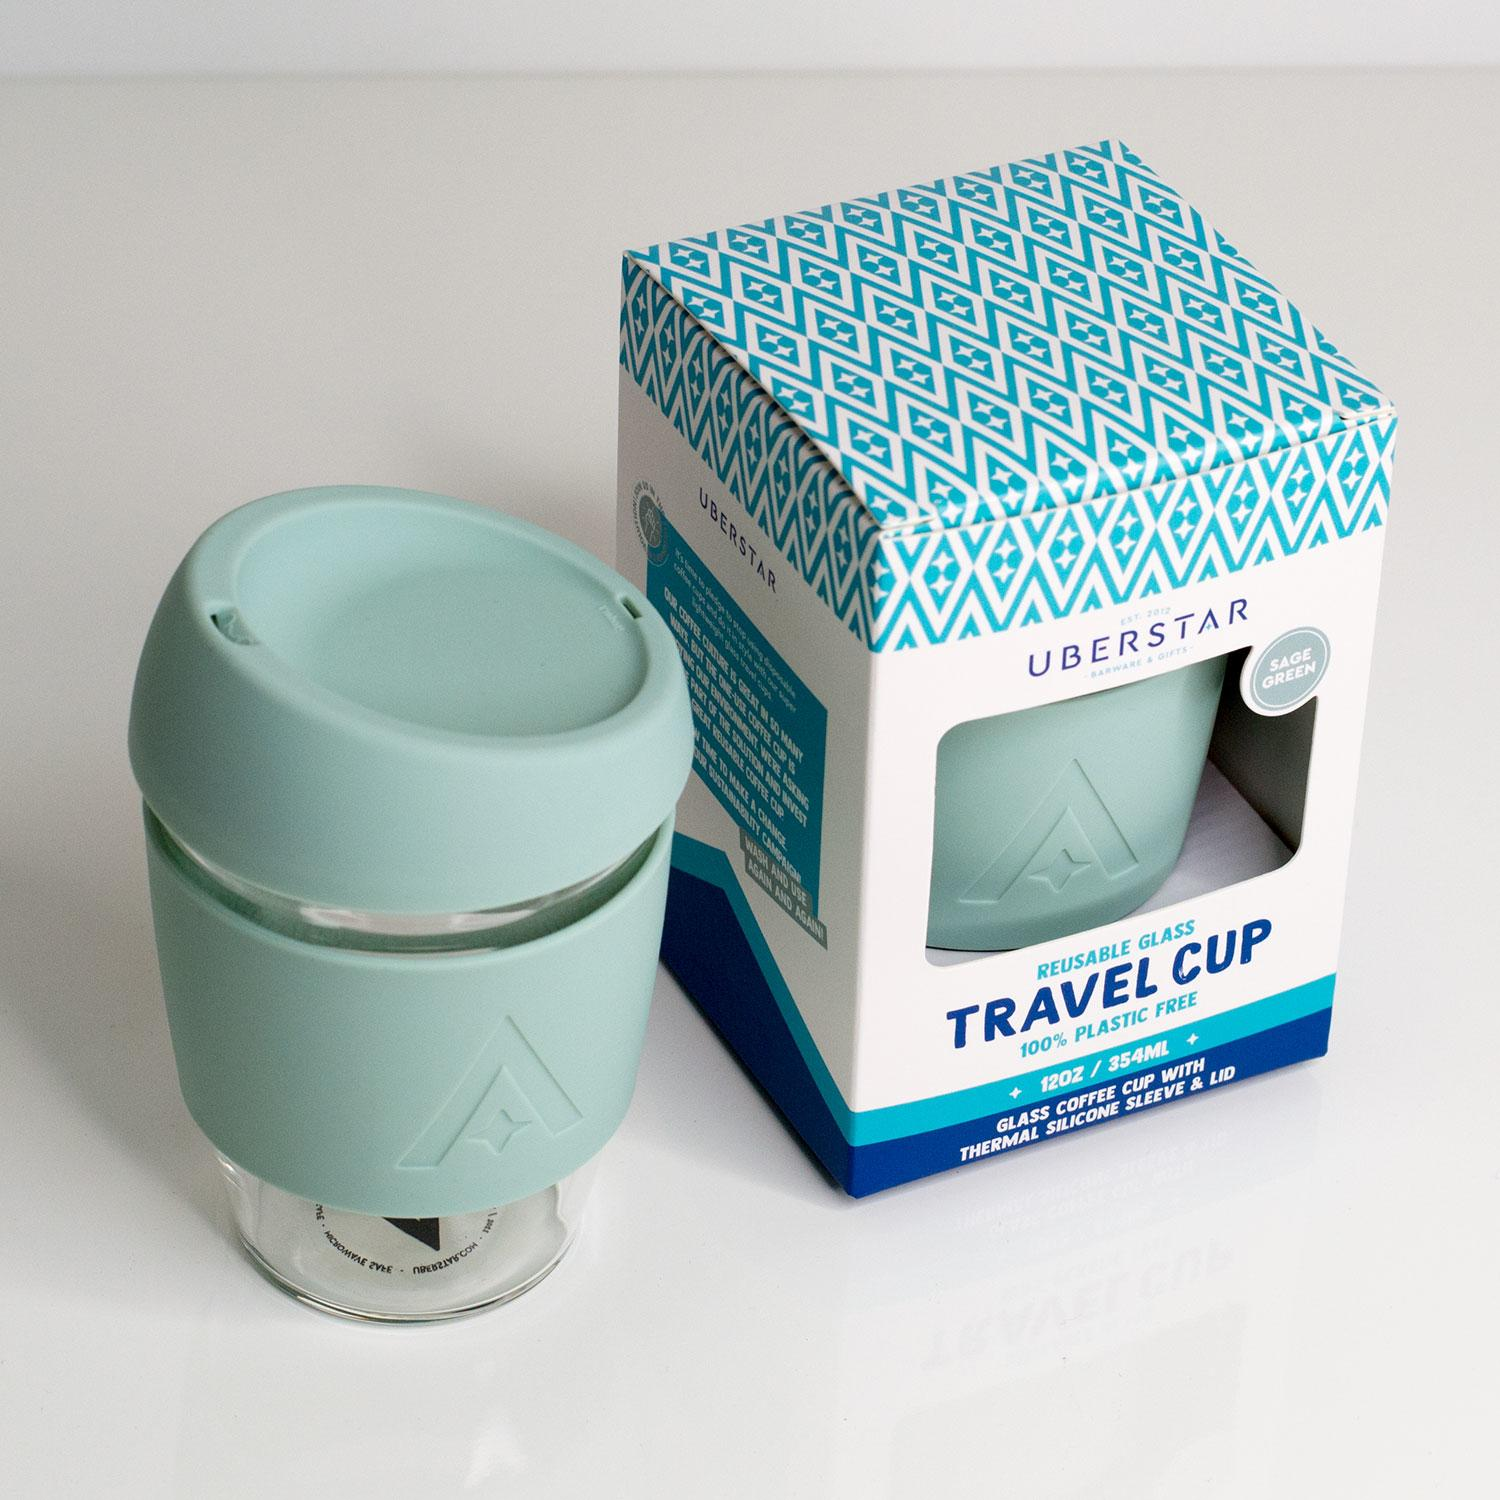 Uberstar Reusable Glass Travel Cup - Sage Green - Only £14.99